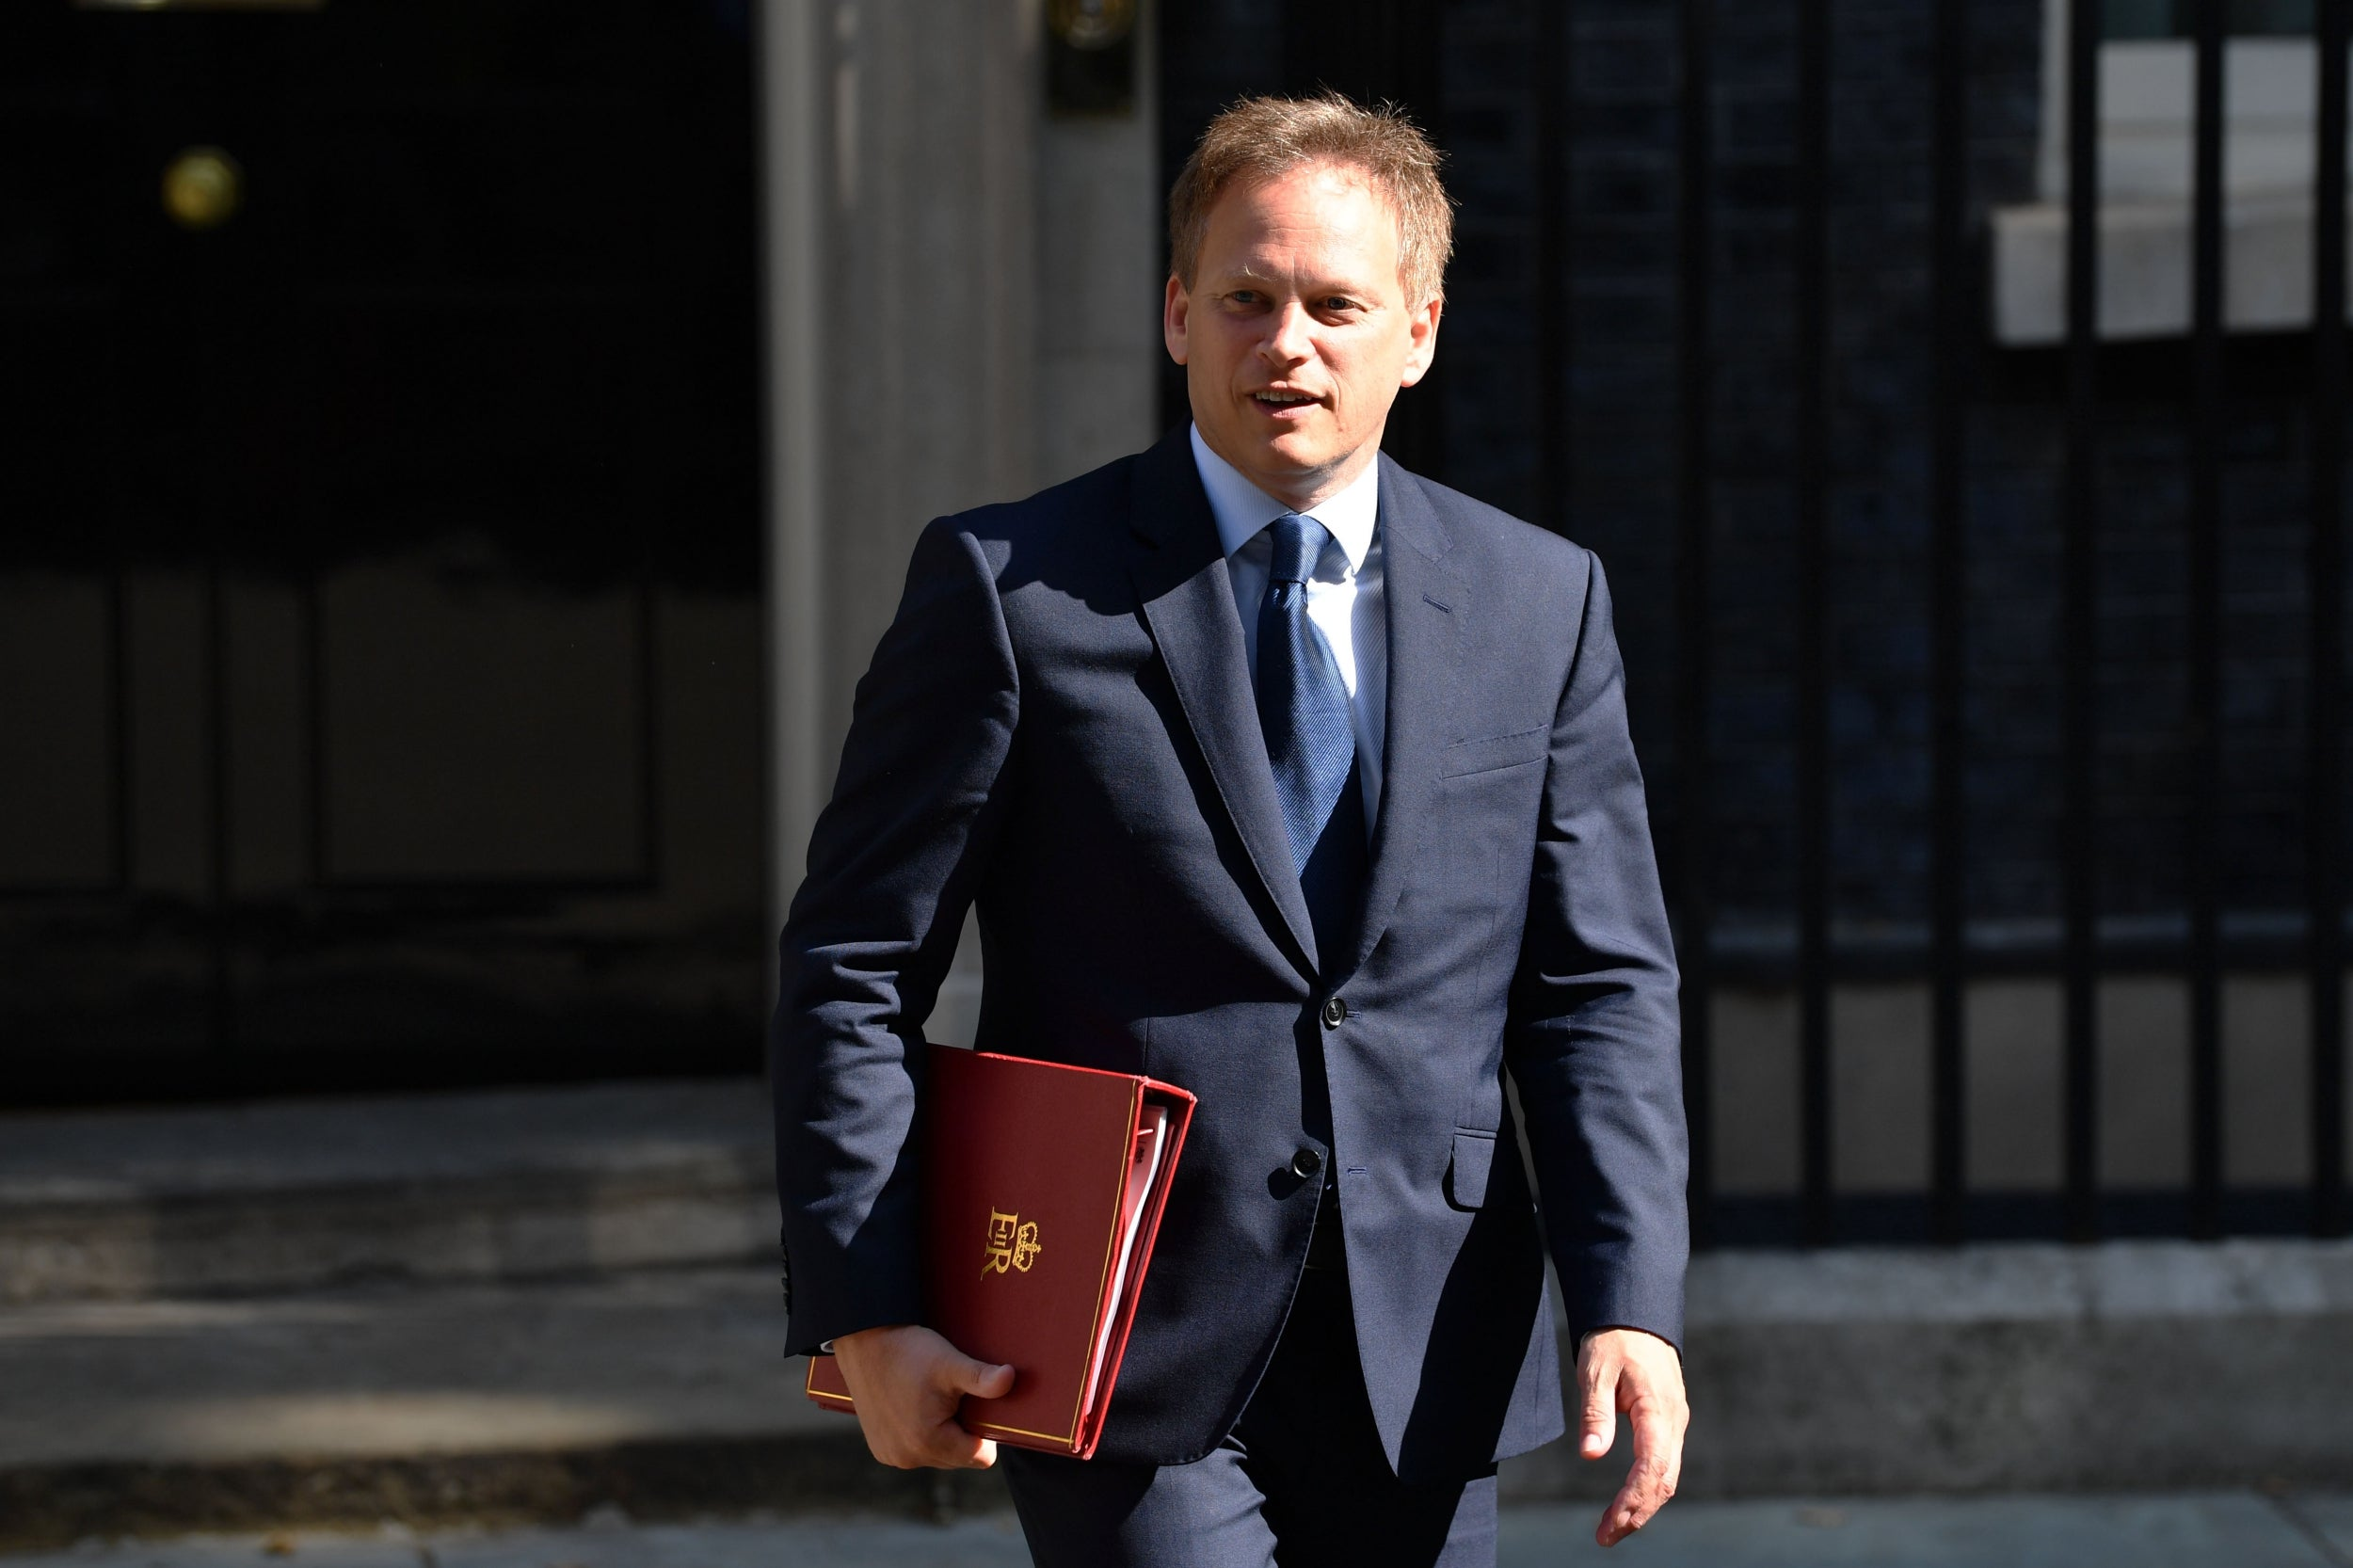 In: Grant Shapps